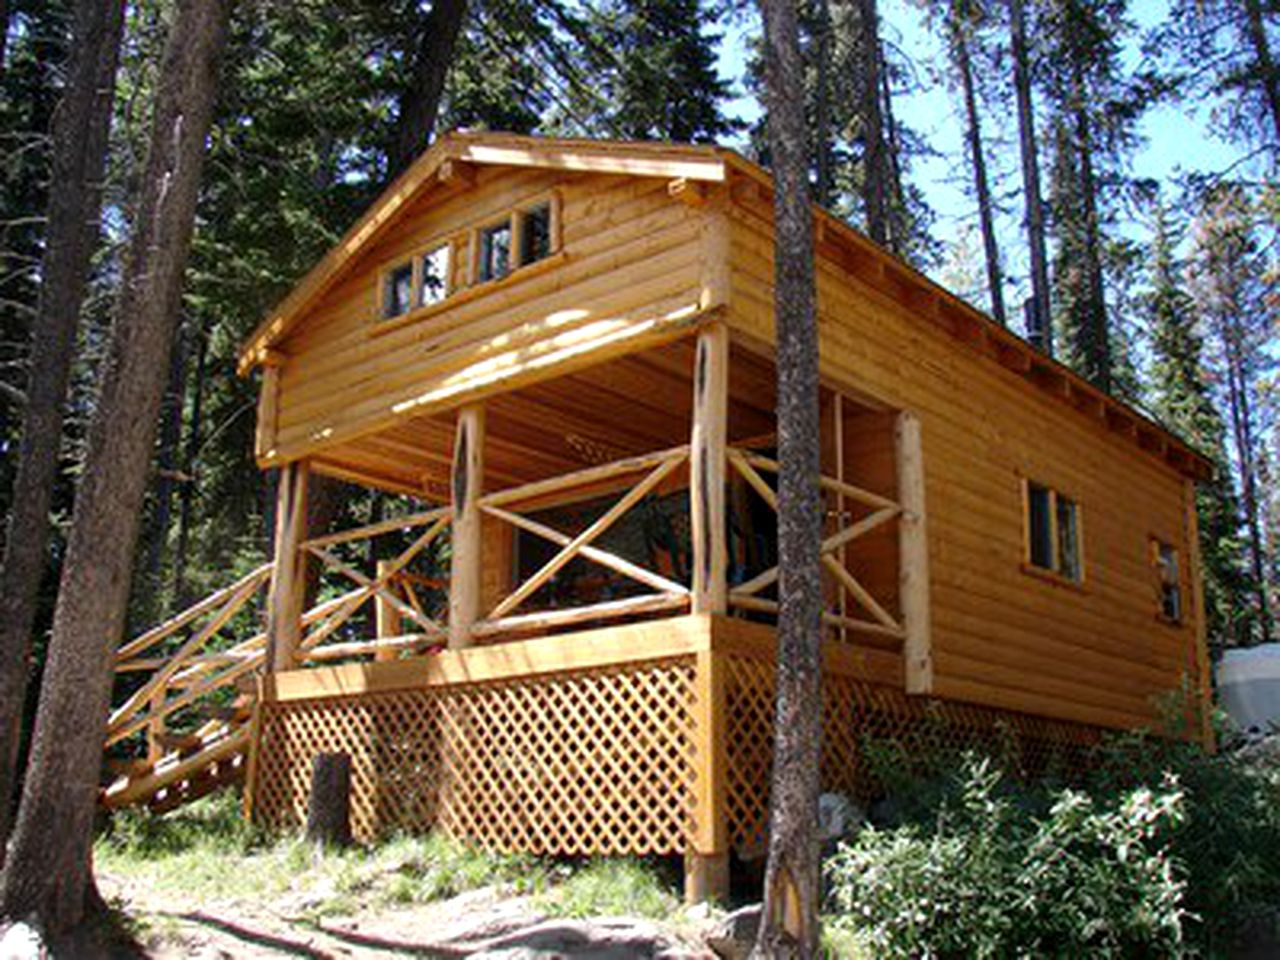 Cabins (Lake Country, British Columbia, Canada)